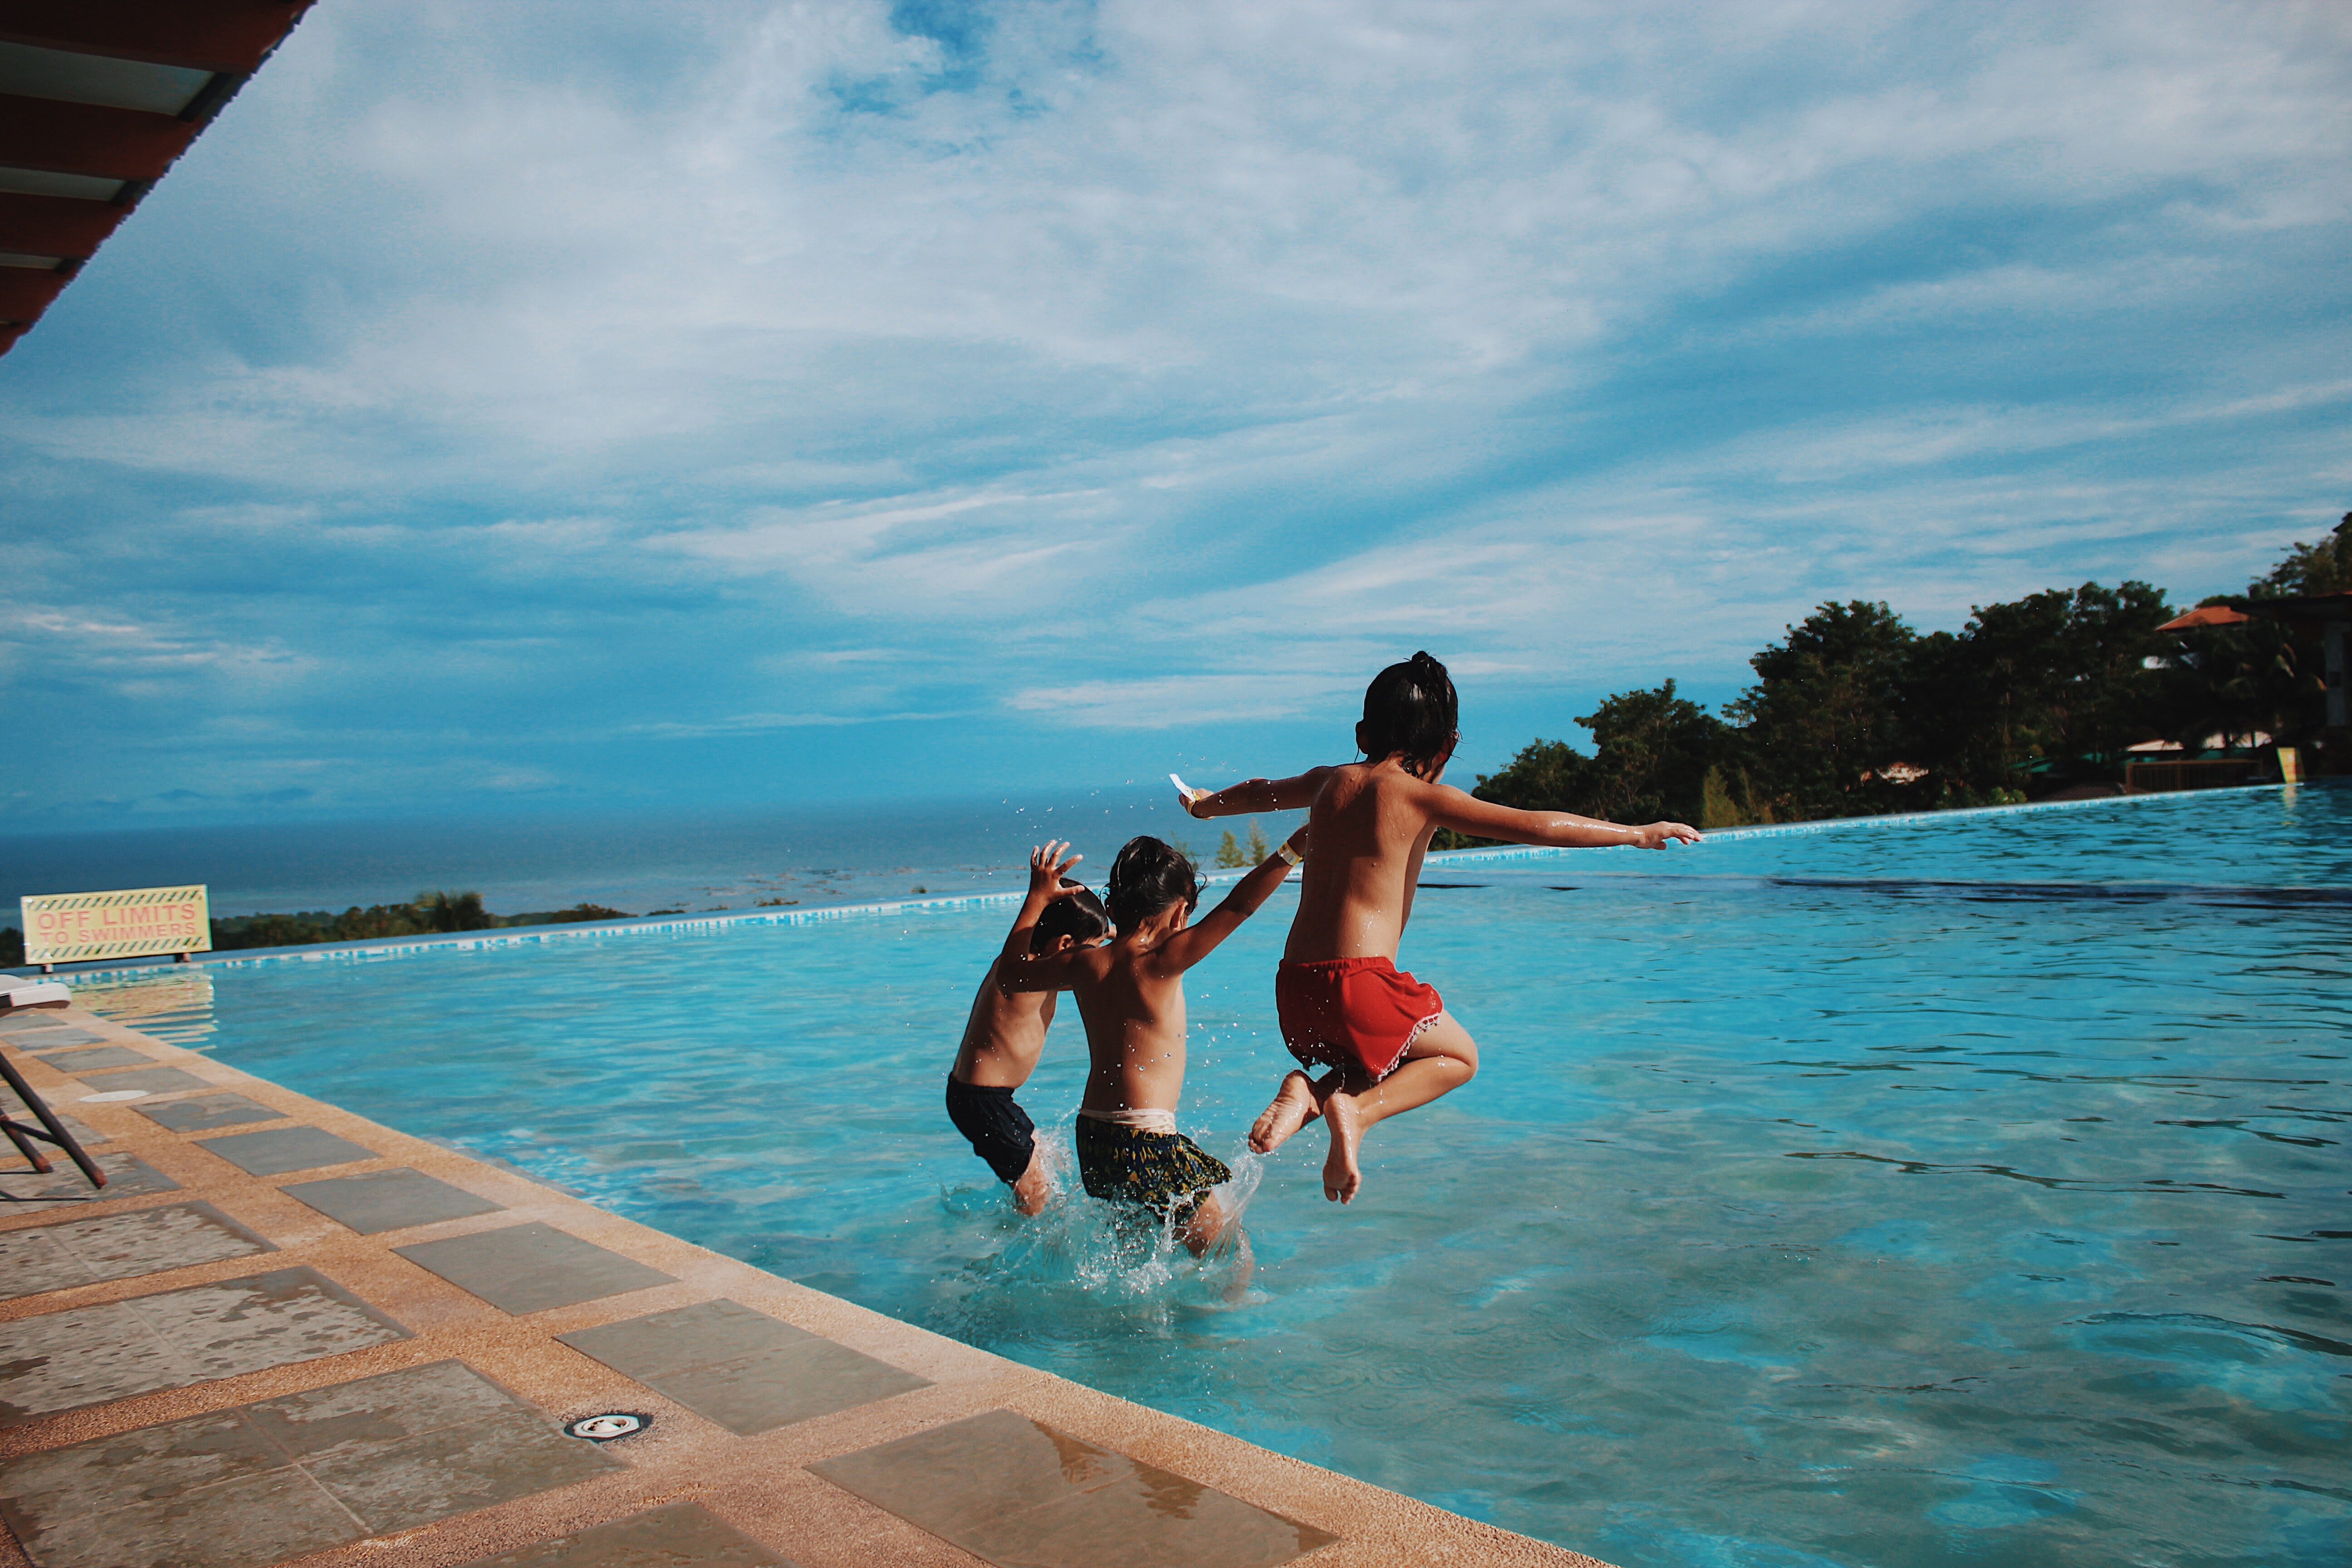 Fun Activities and Things to Do in the Summer